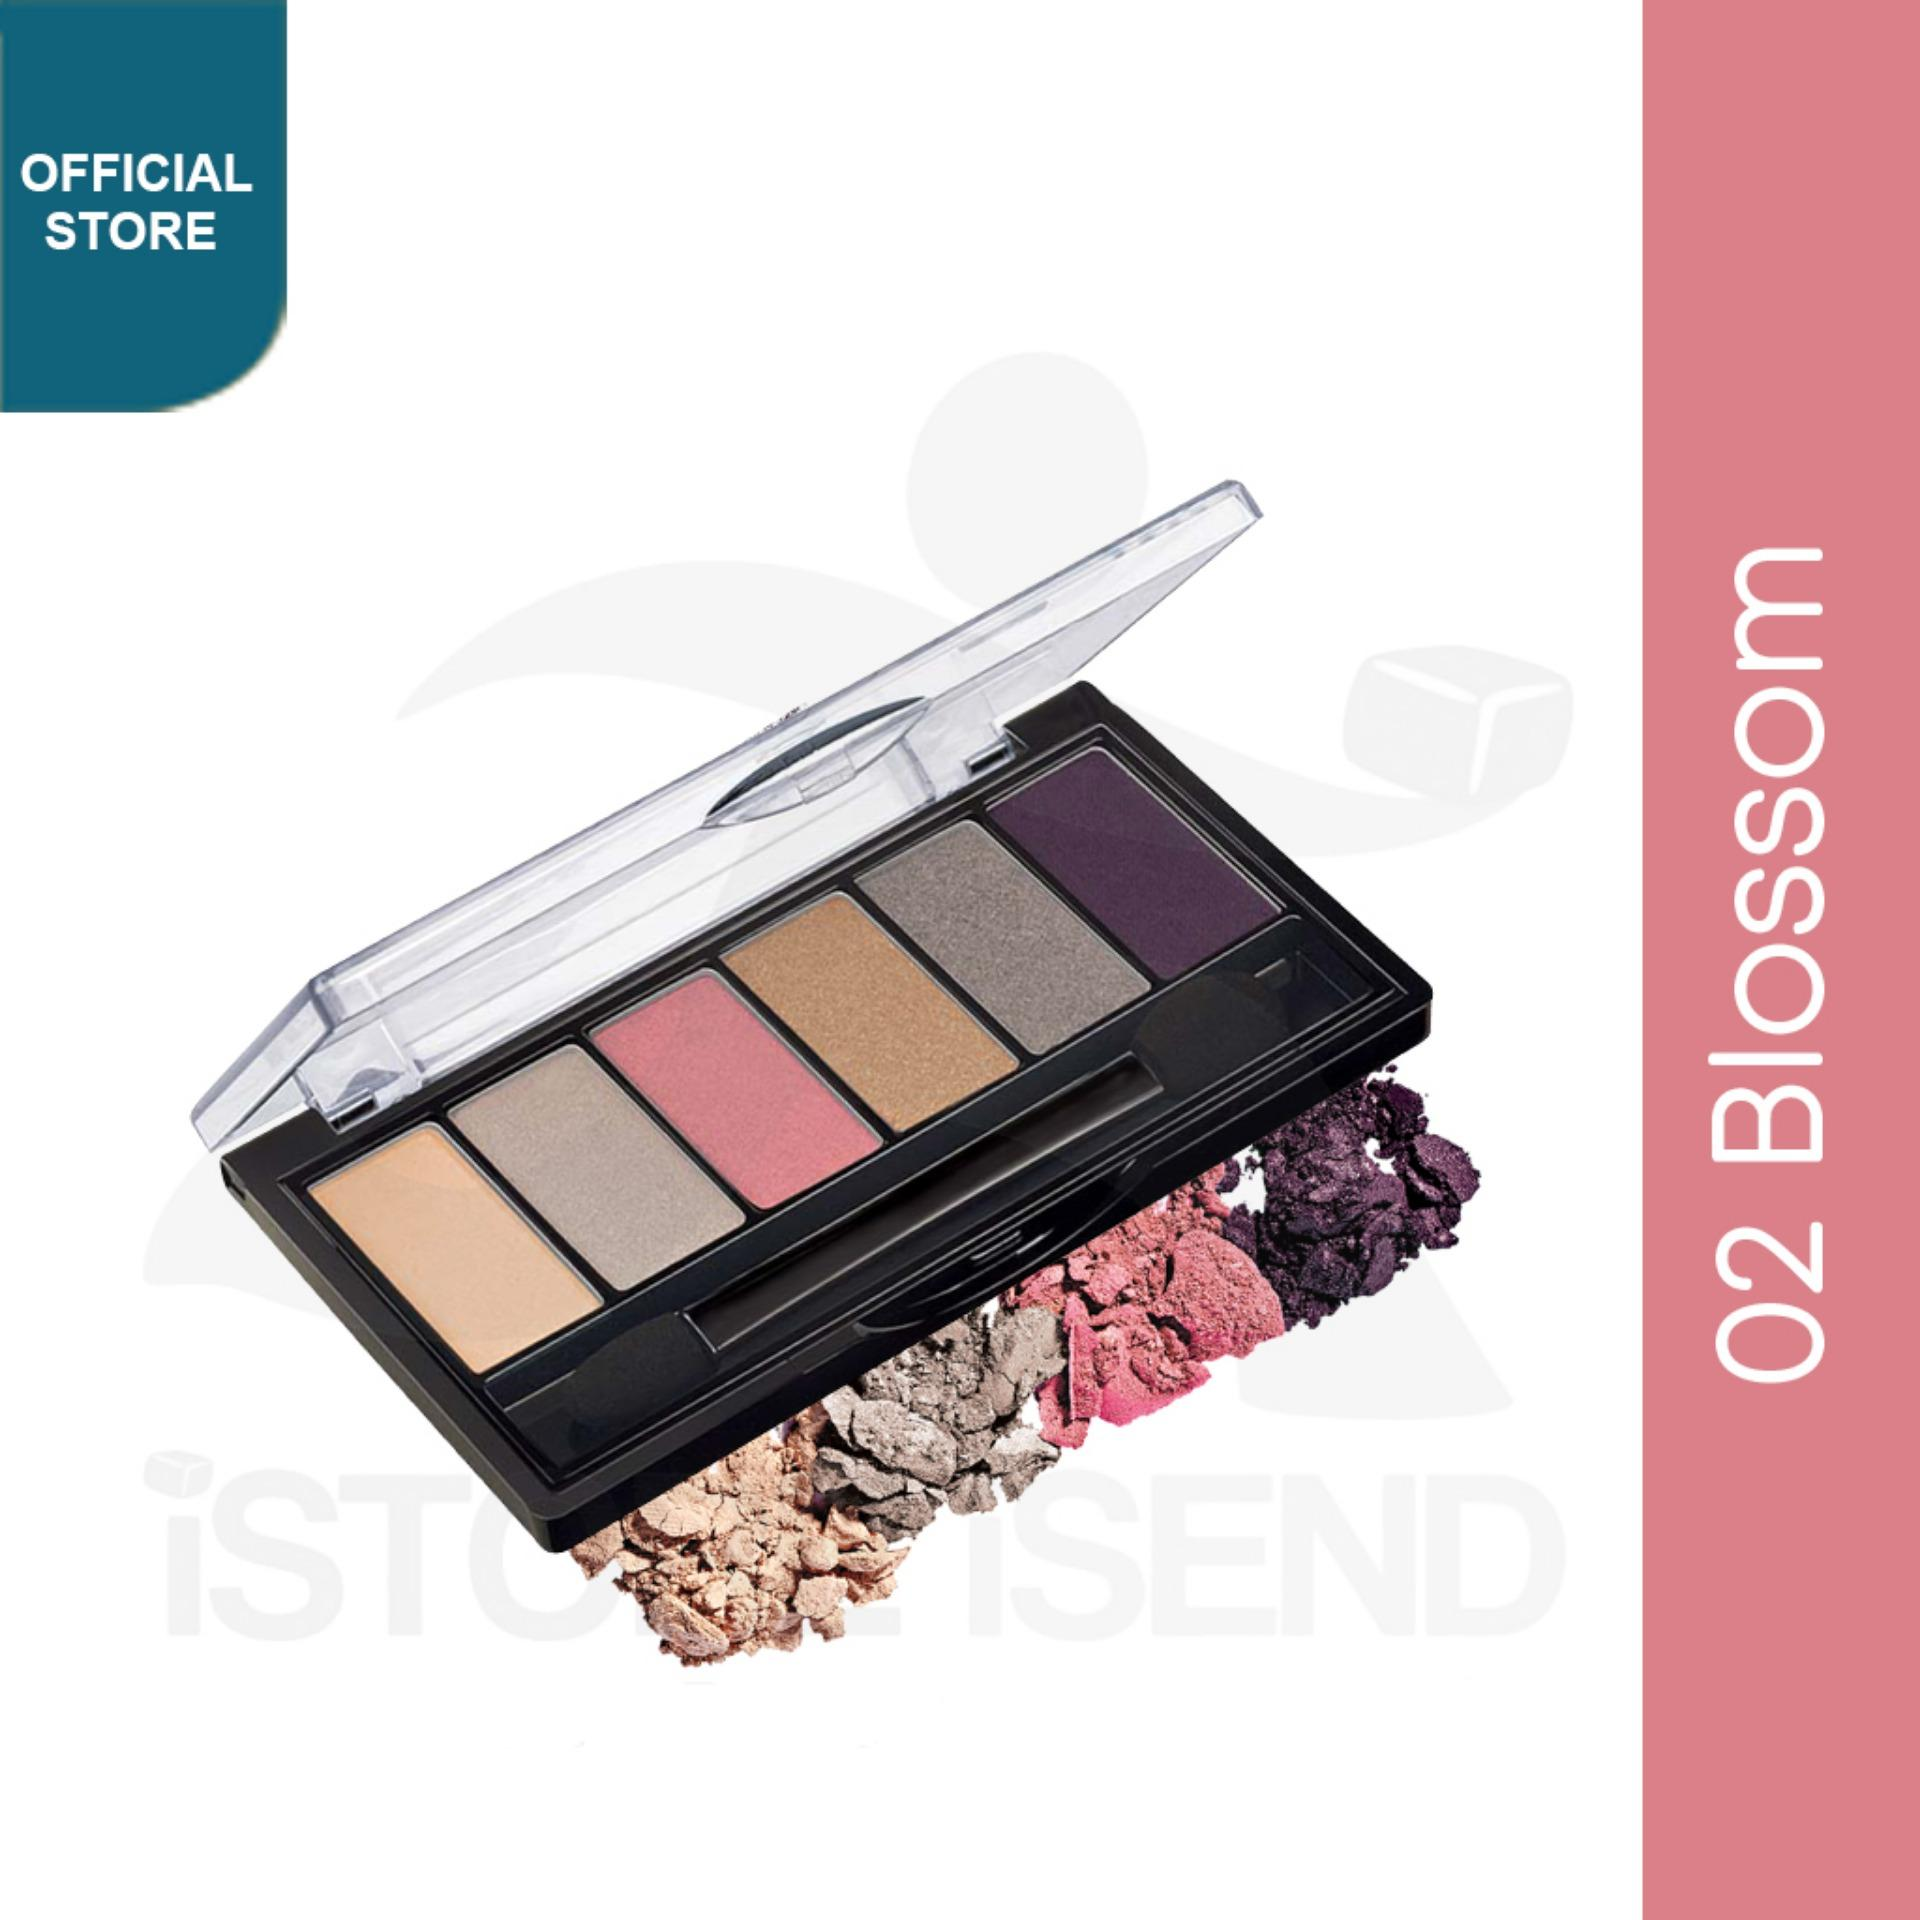 Buy Sell Cheapest Super Hot Silkygirl Best Quality Product Deals Eye Opener Waterproof Mascara 01 Black Truly Nude Shadow Palette 02 Blossom Ge0237